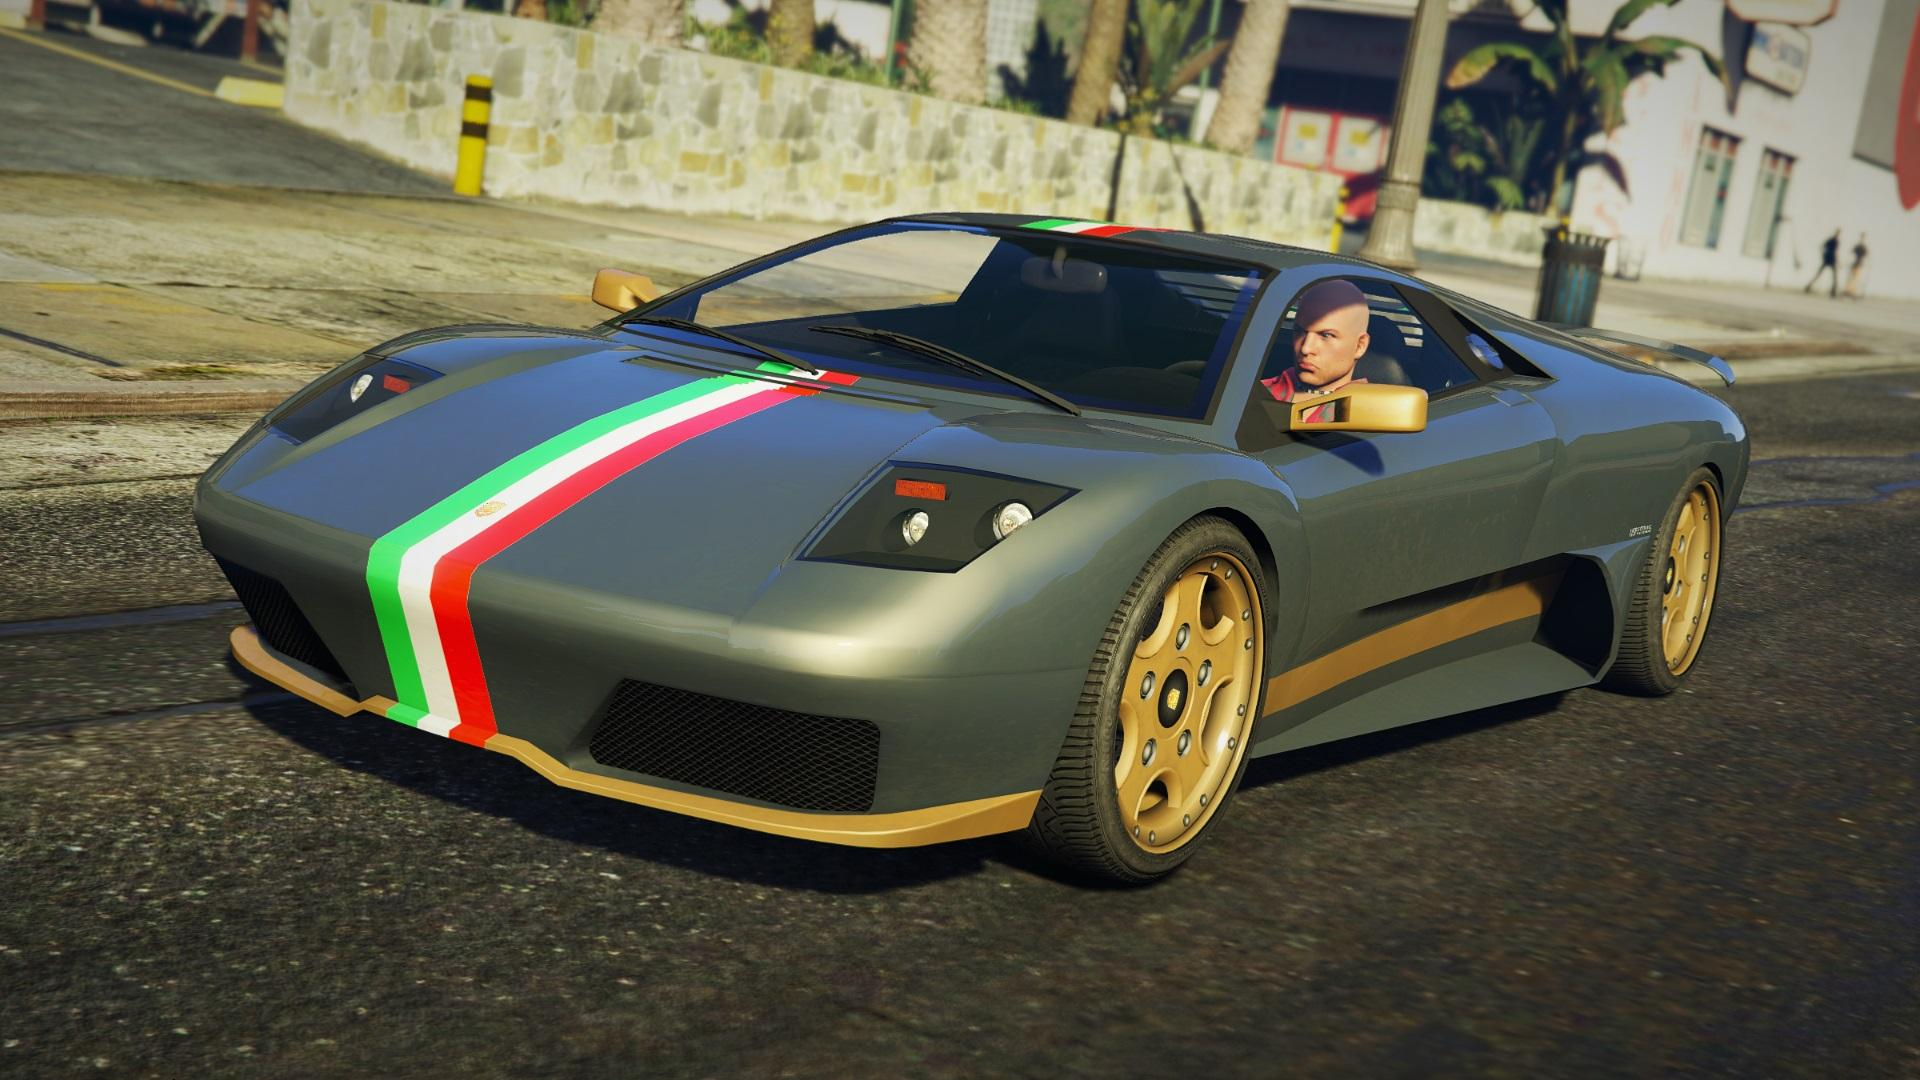 Realcars03 Dlc From Gtav Mods As New Addon together with 2177 Gta 5 Online Classic Muscle Cars likewise Watch likewise 56586 Gta V Invetero Coquette furthermore Watch. on gta 5 coquette